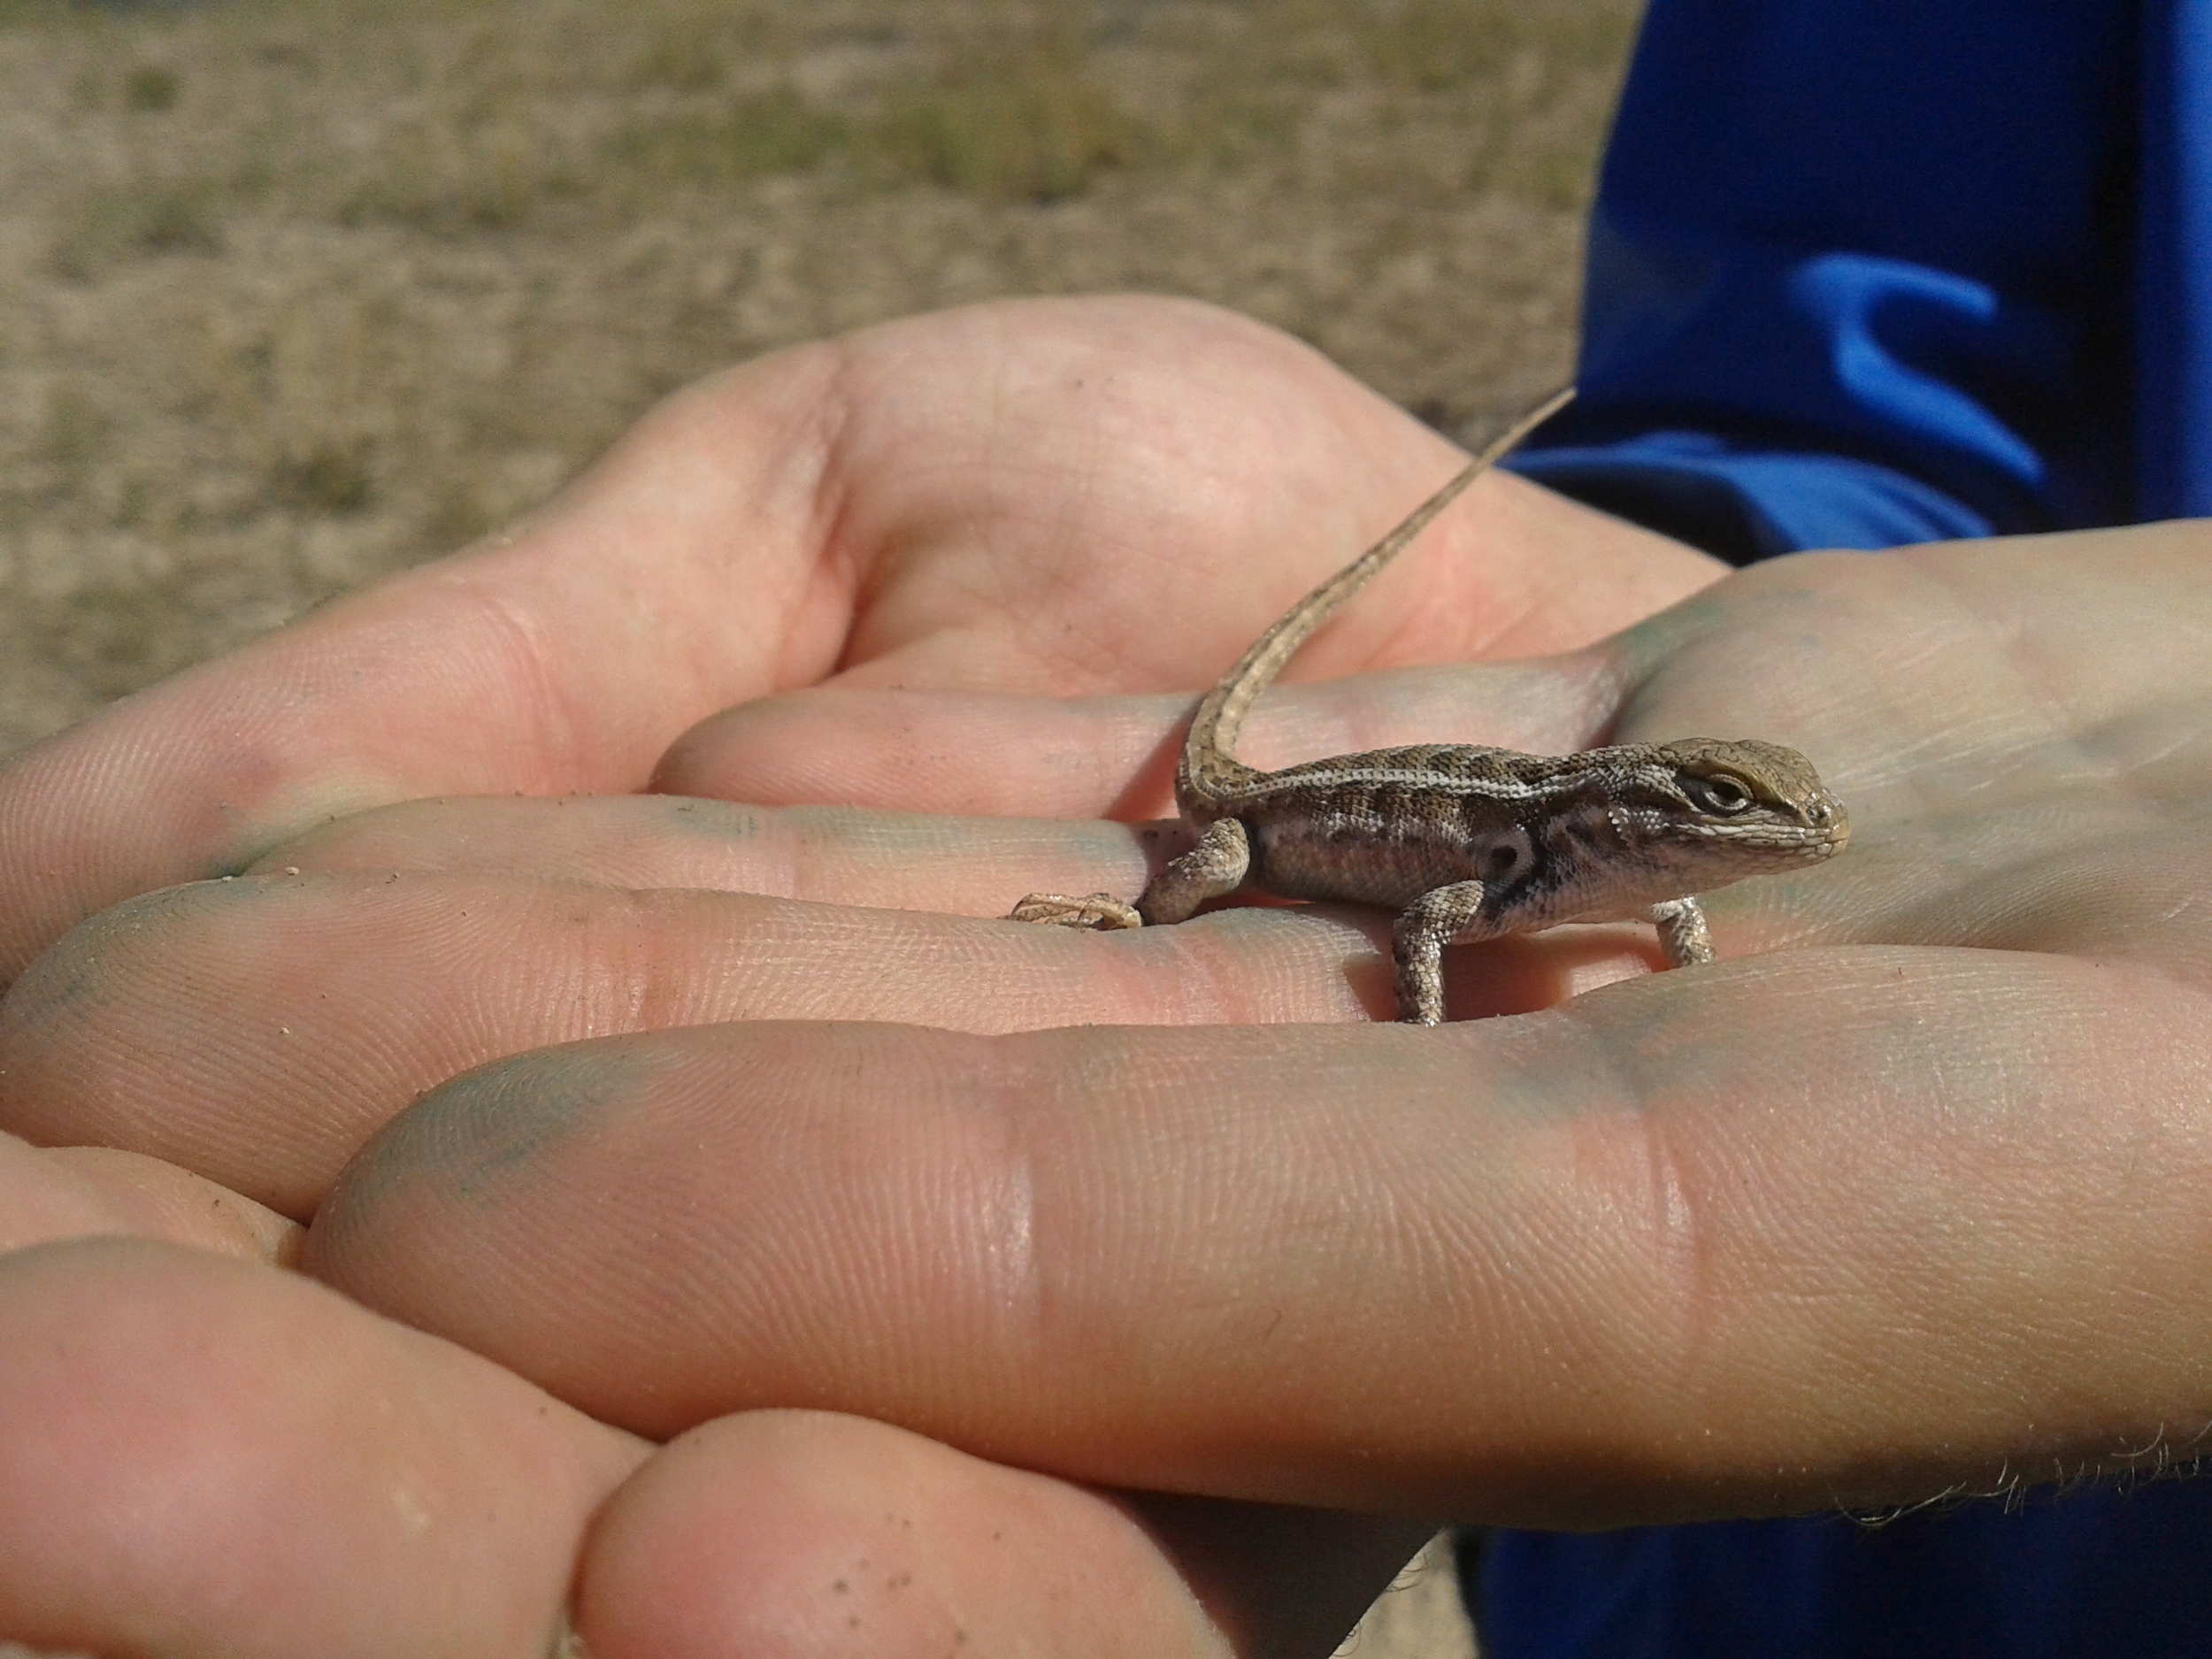 Unidentified lizard.